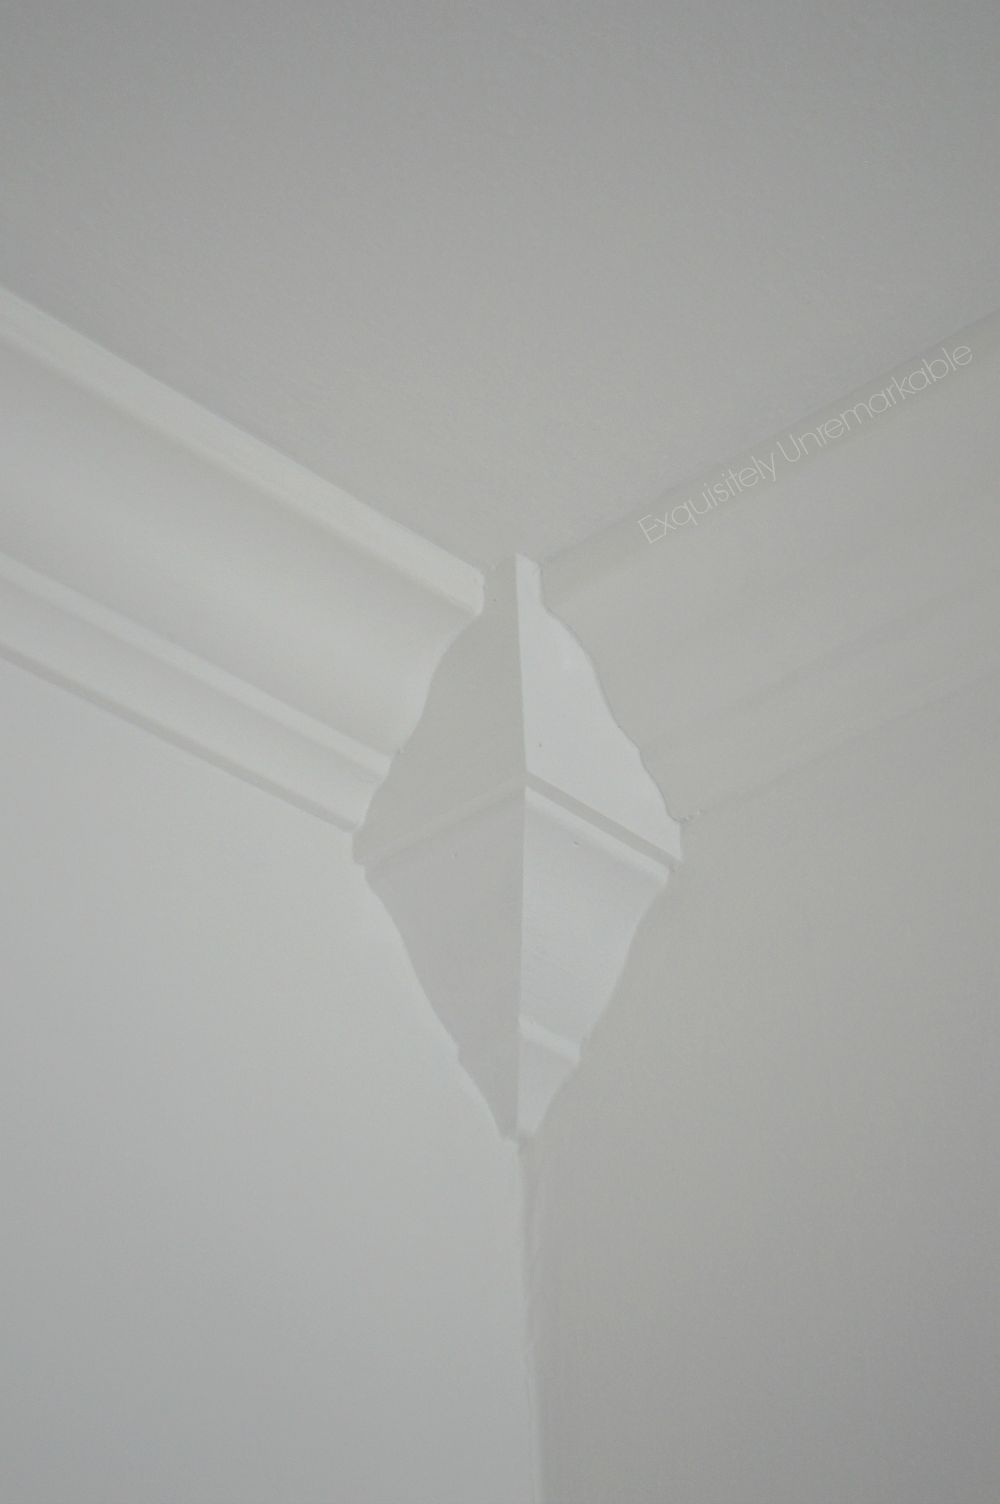 Corner Moulding Cheat